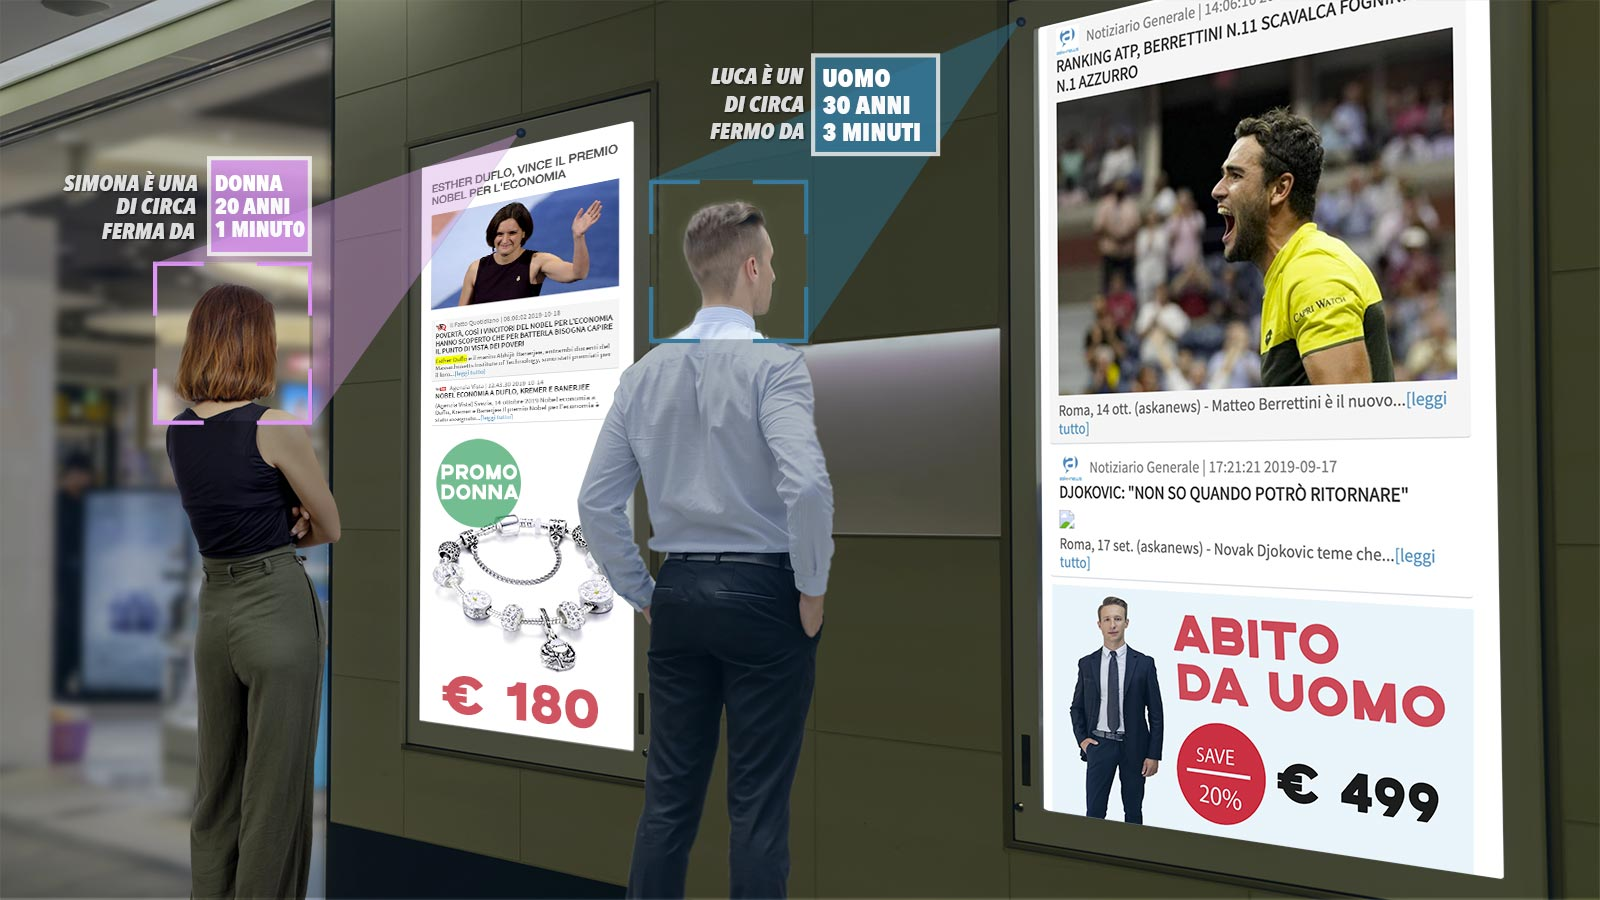 Showy advertising con intelligenza artificiale